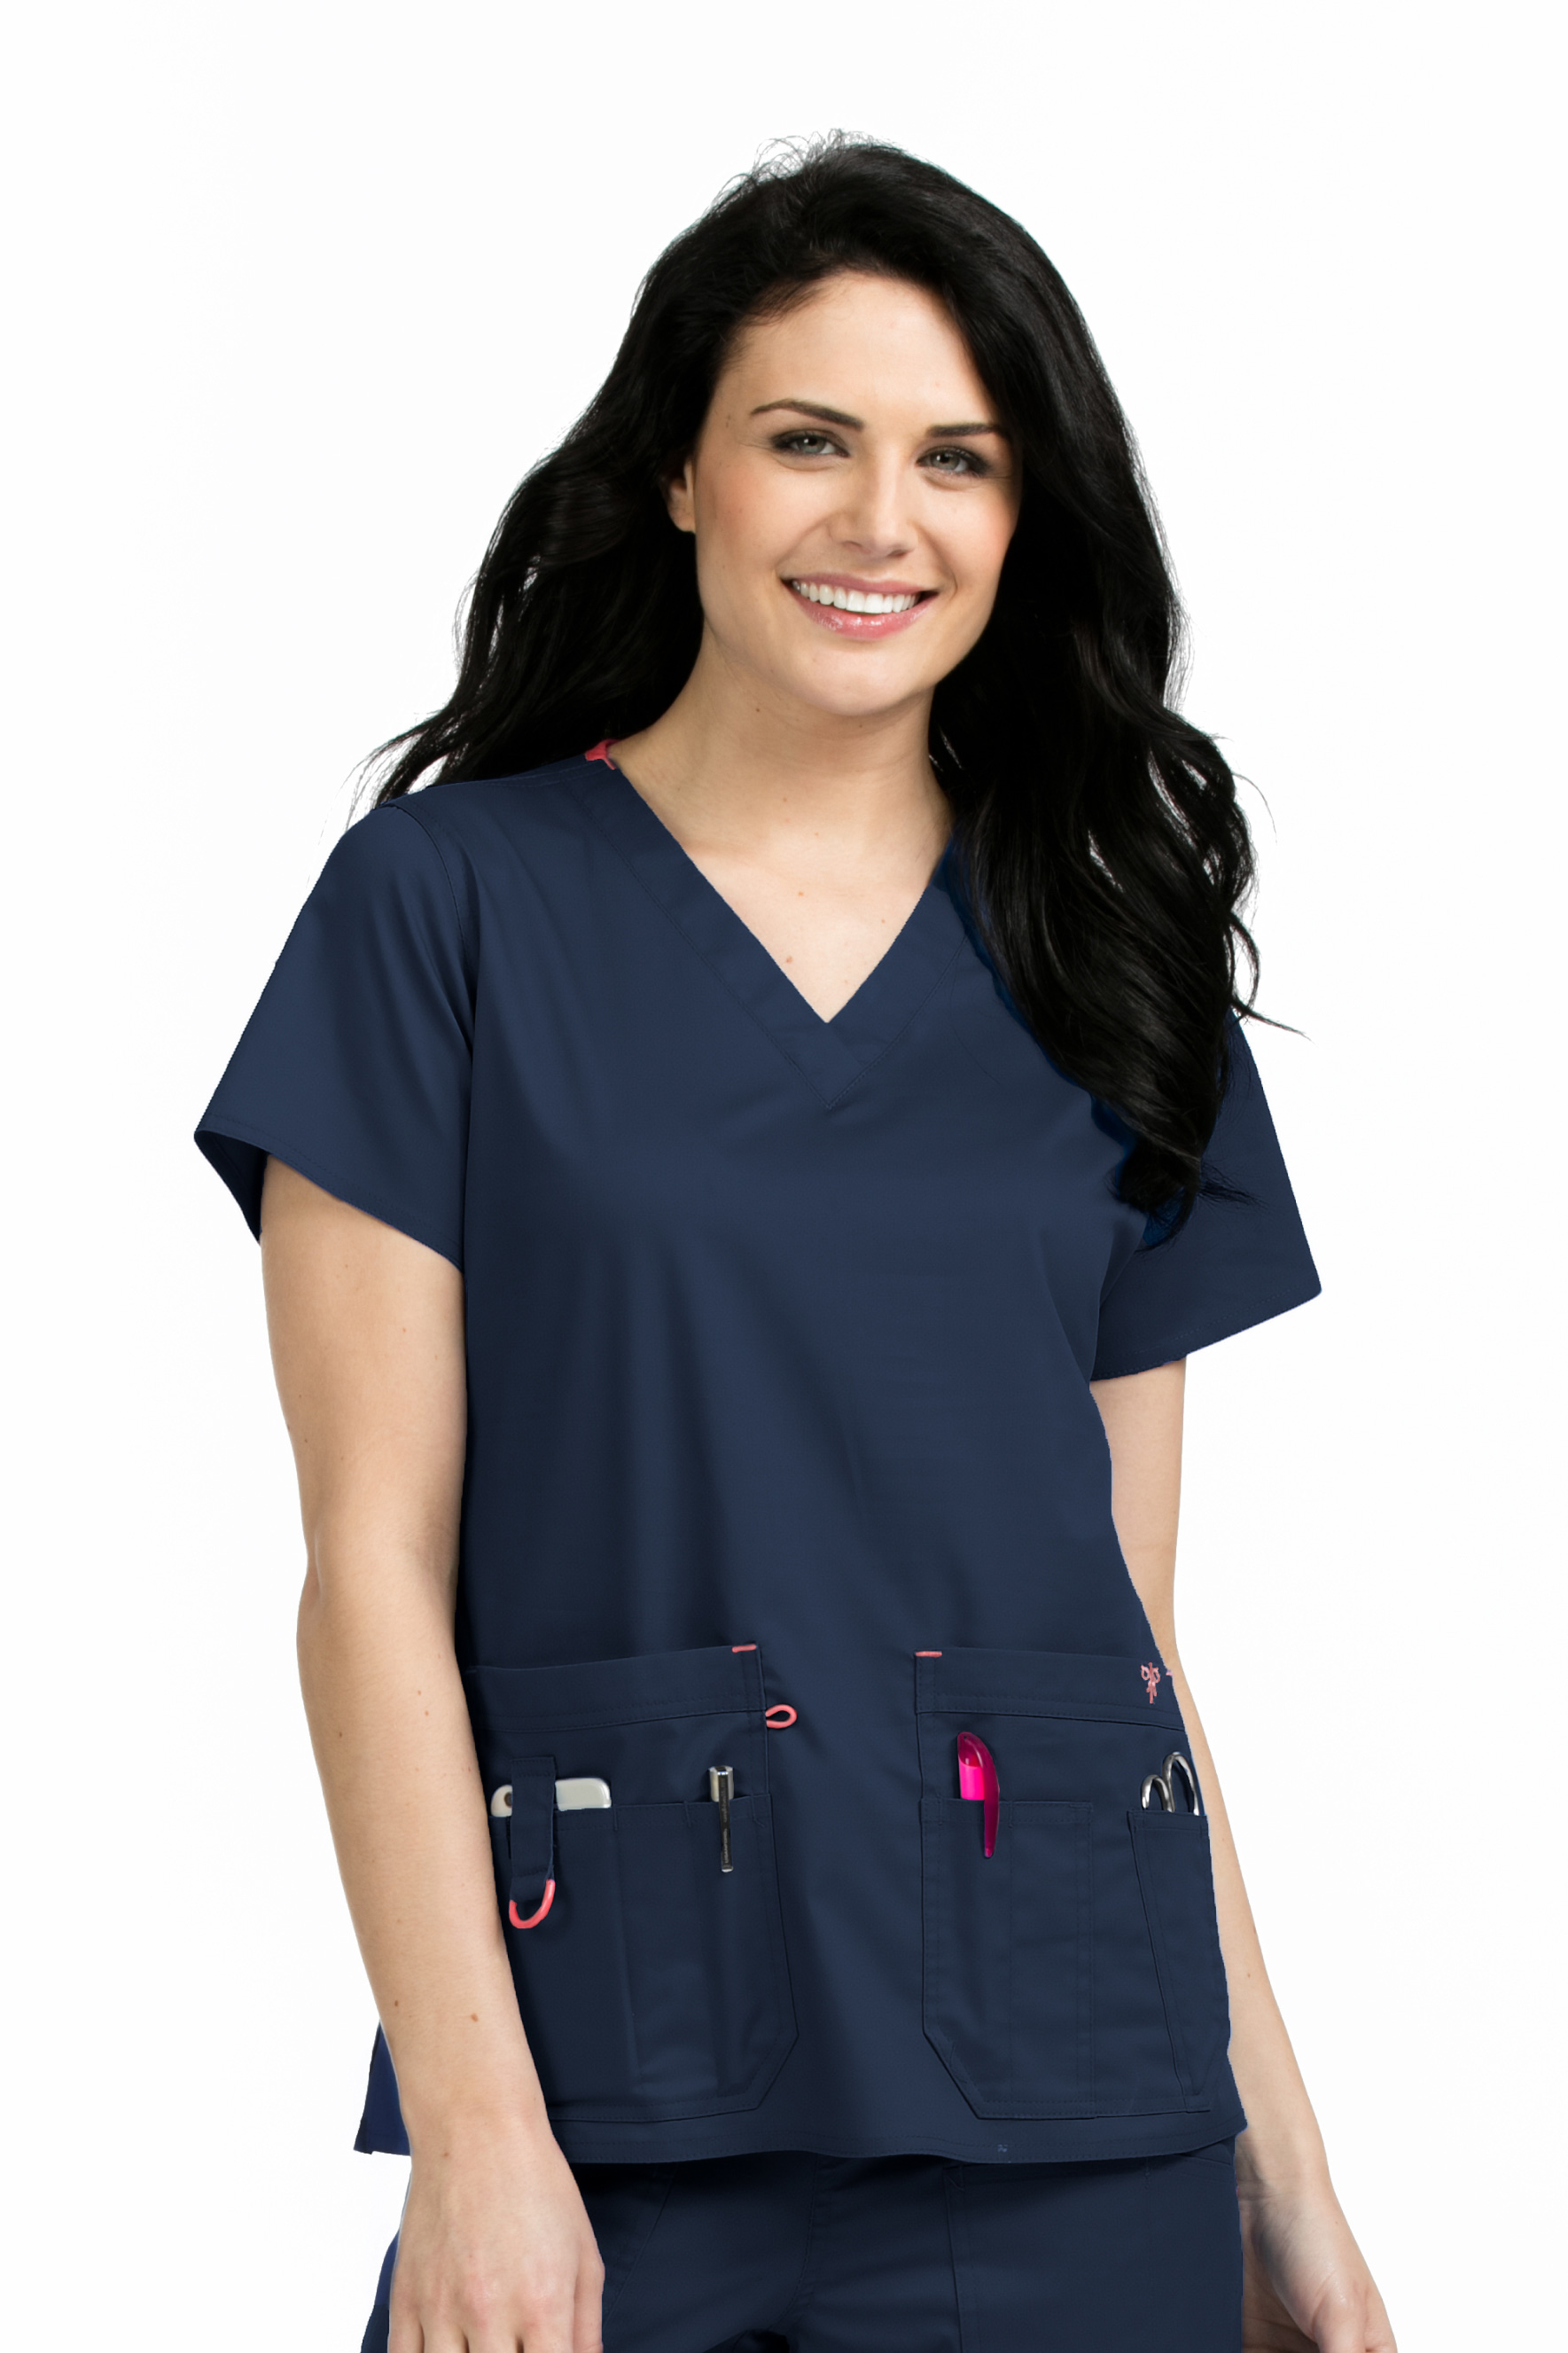 6220561cca5 Rescue Top. Combination In Stock. $26.99. Med Couture. 8425